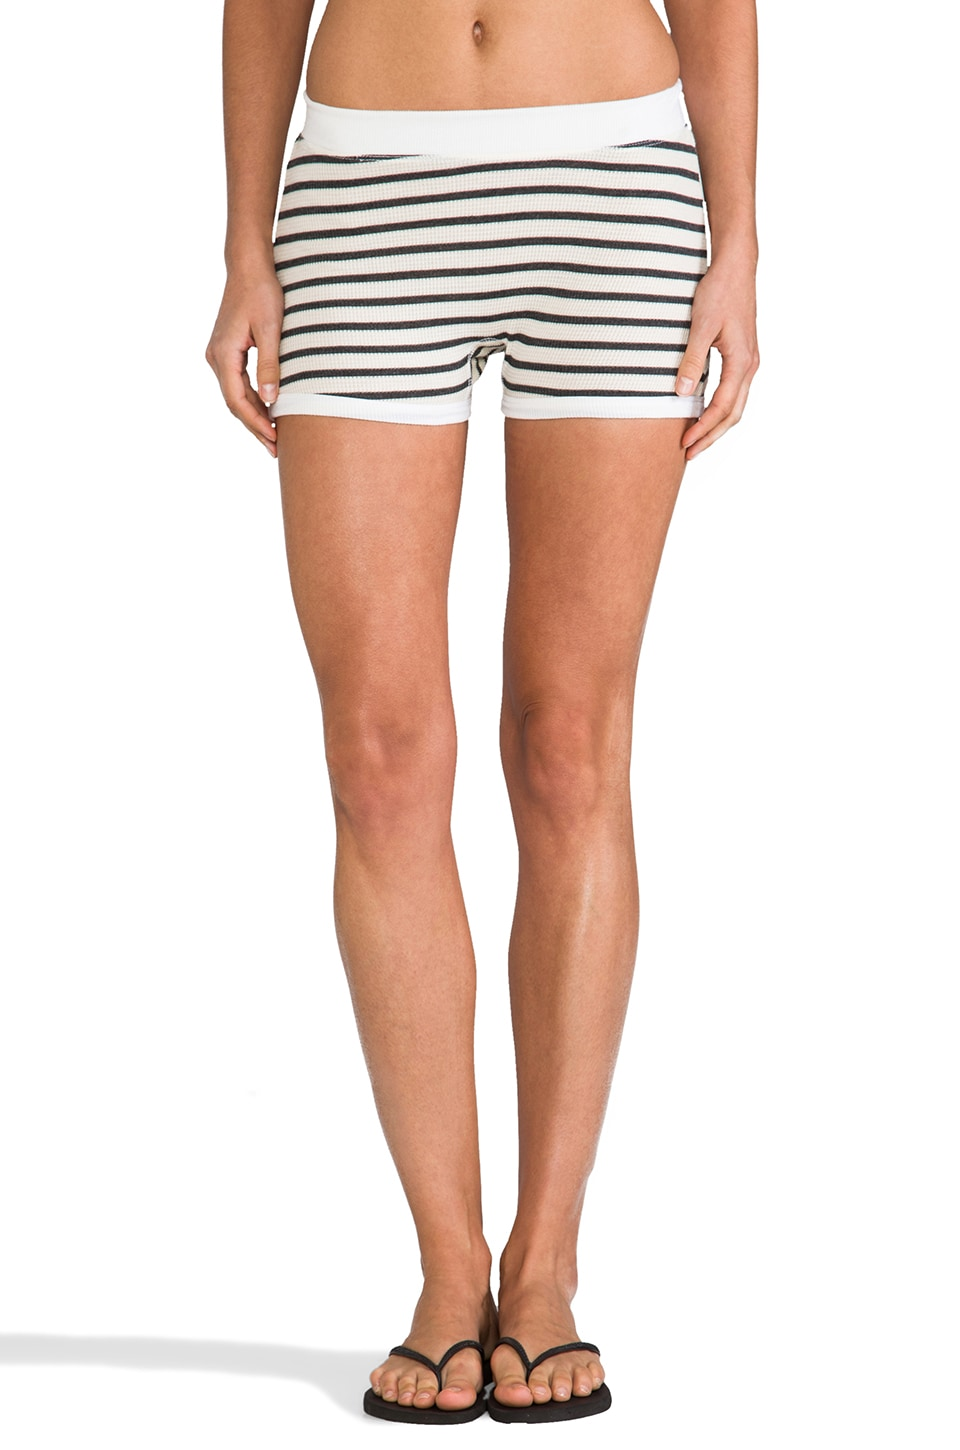 SOLOW Stripe Thermal Booty Short in Polar